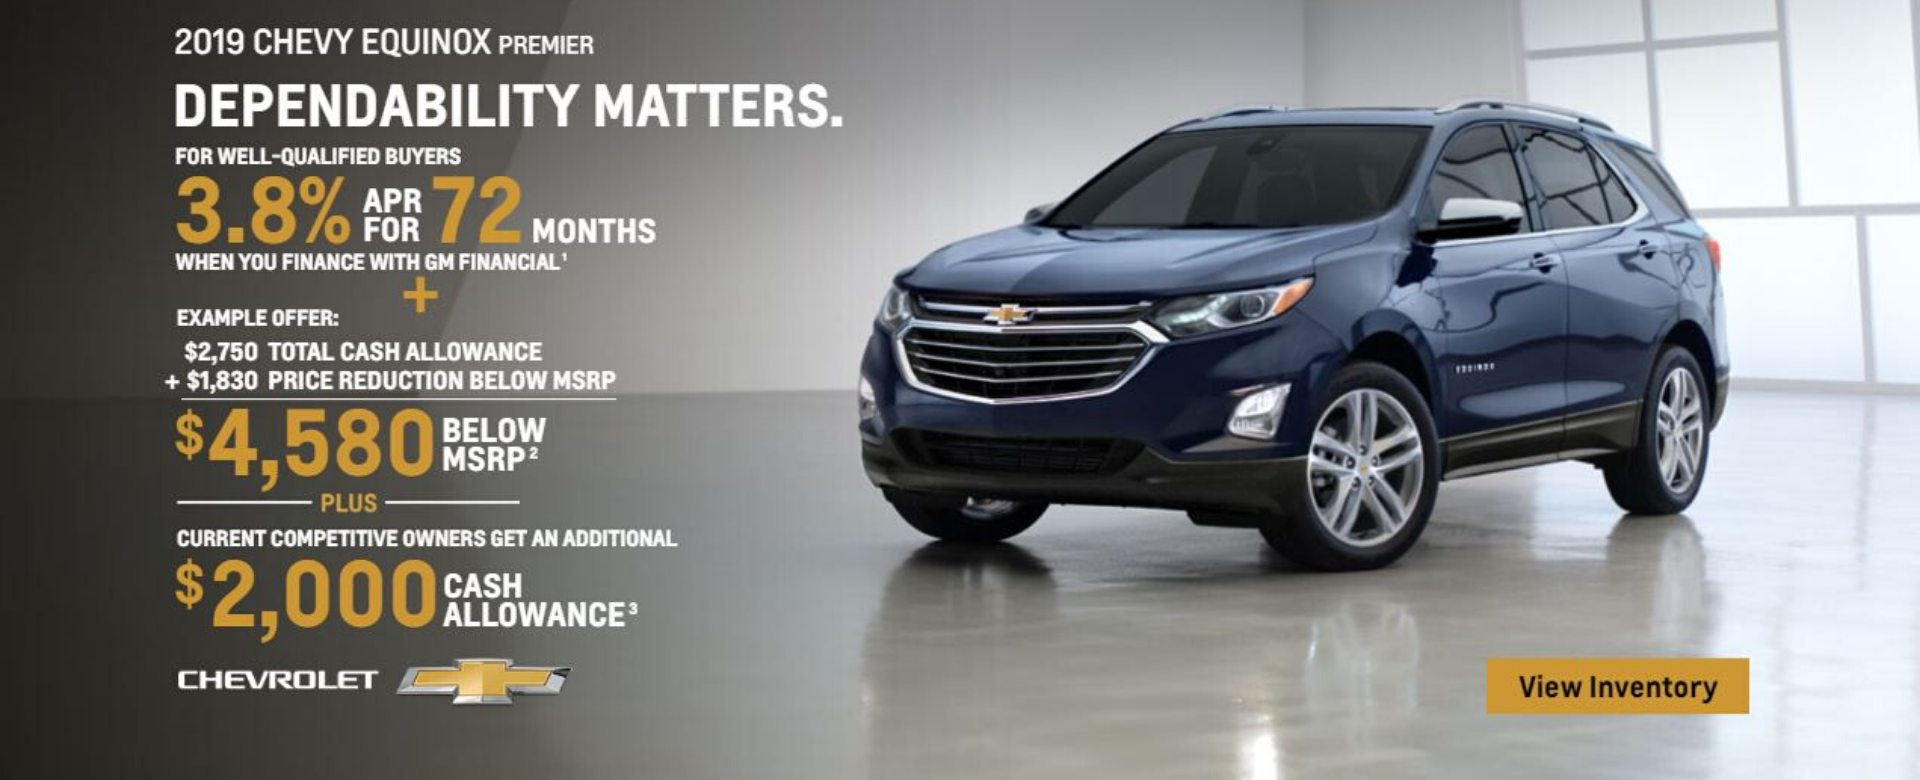 Up to $6000 off Chevrolet Equinox at Bellamy Strickland in McDonough